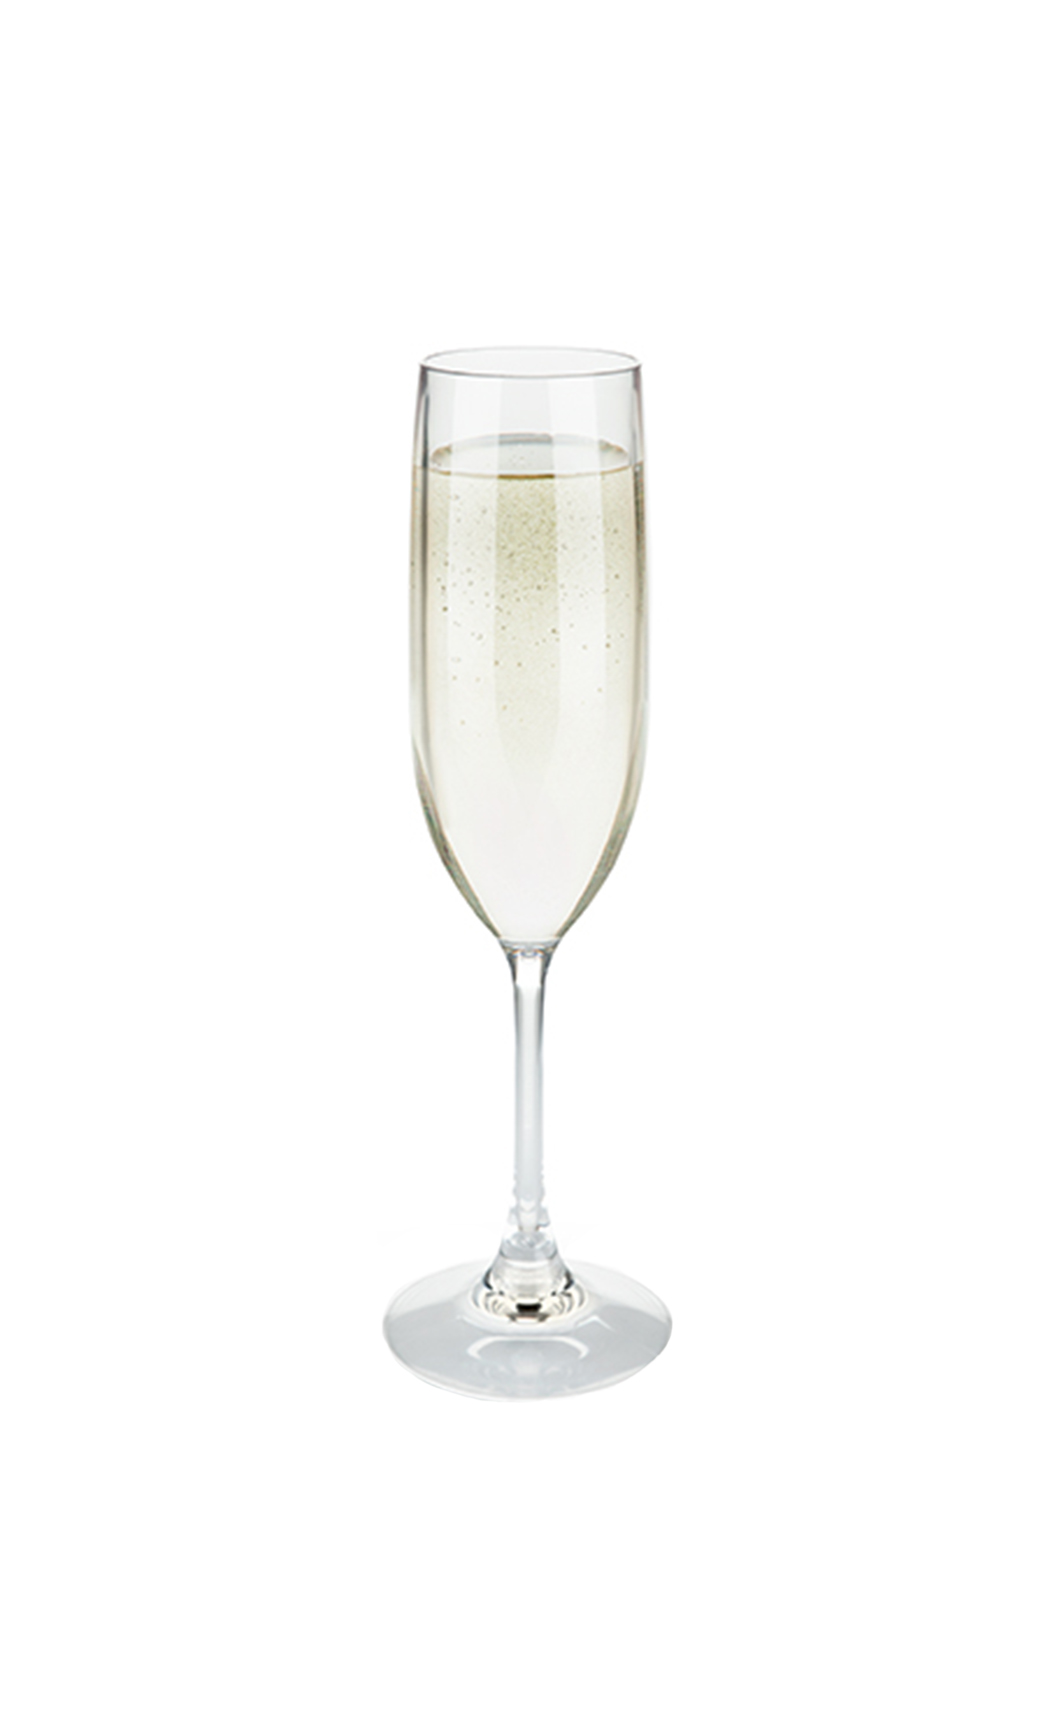 Polycarbonate Champagne Flute